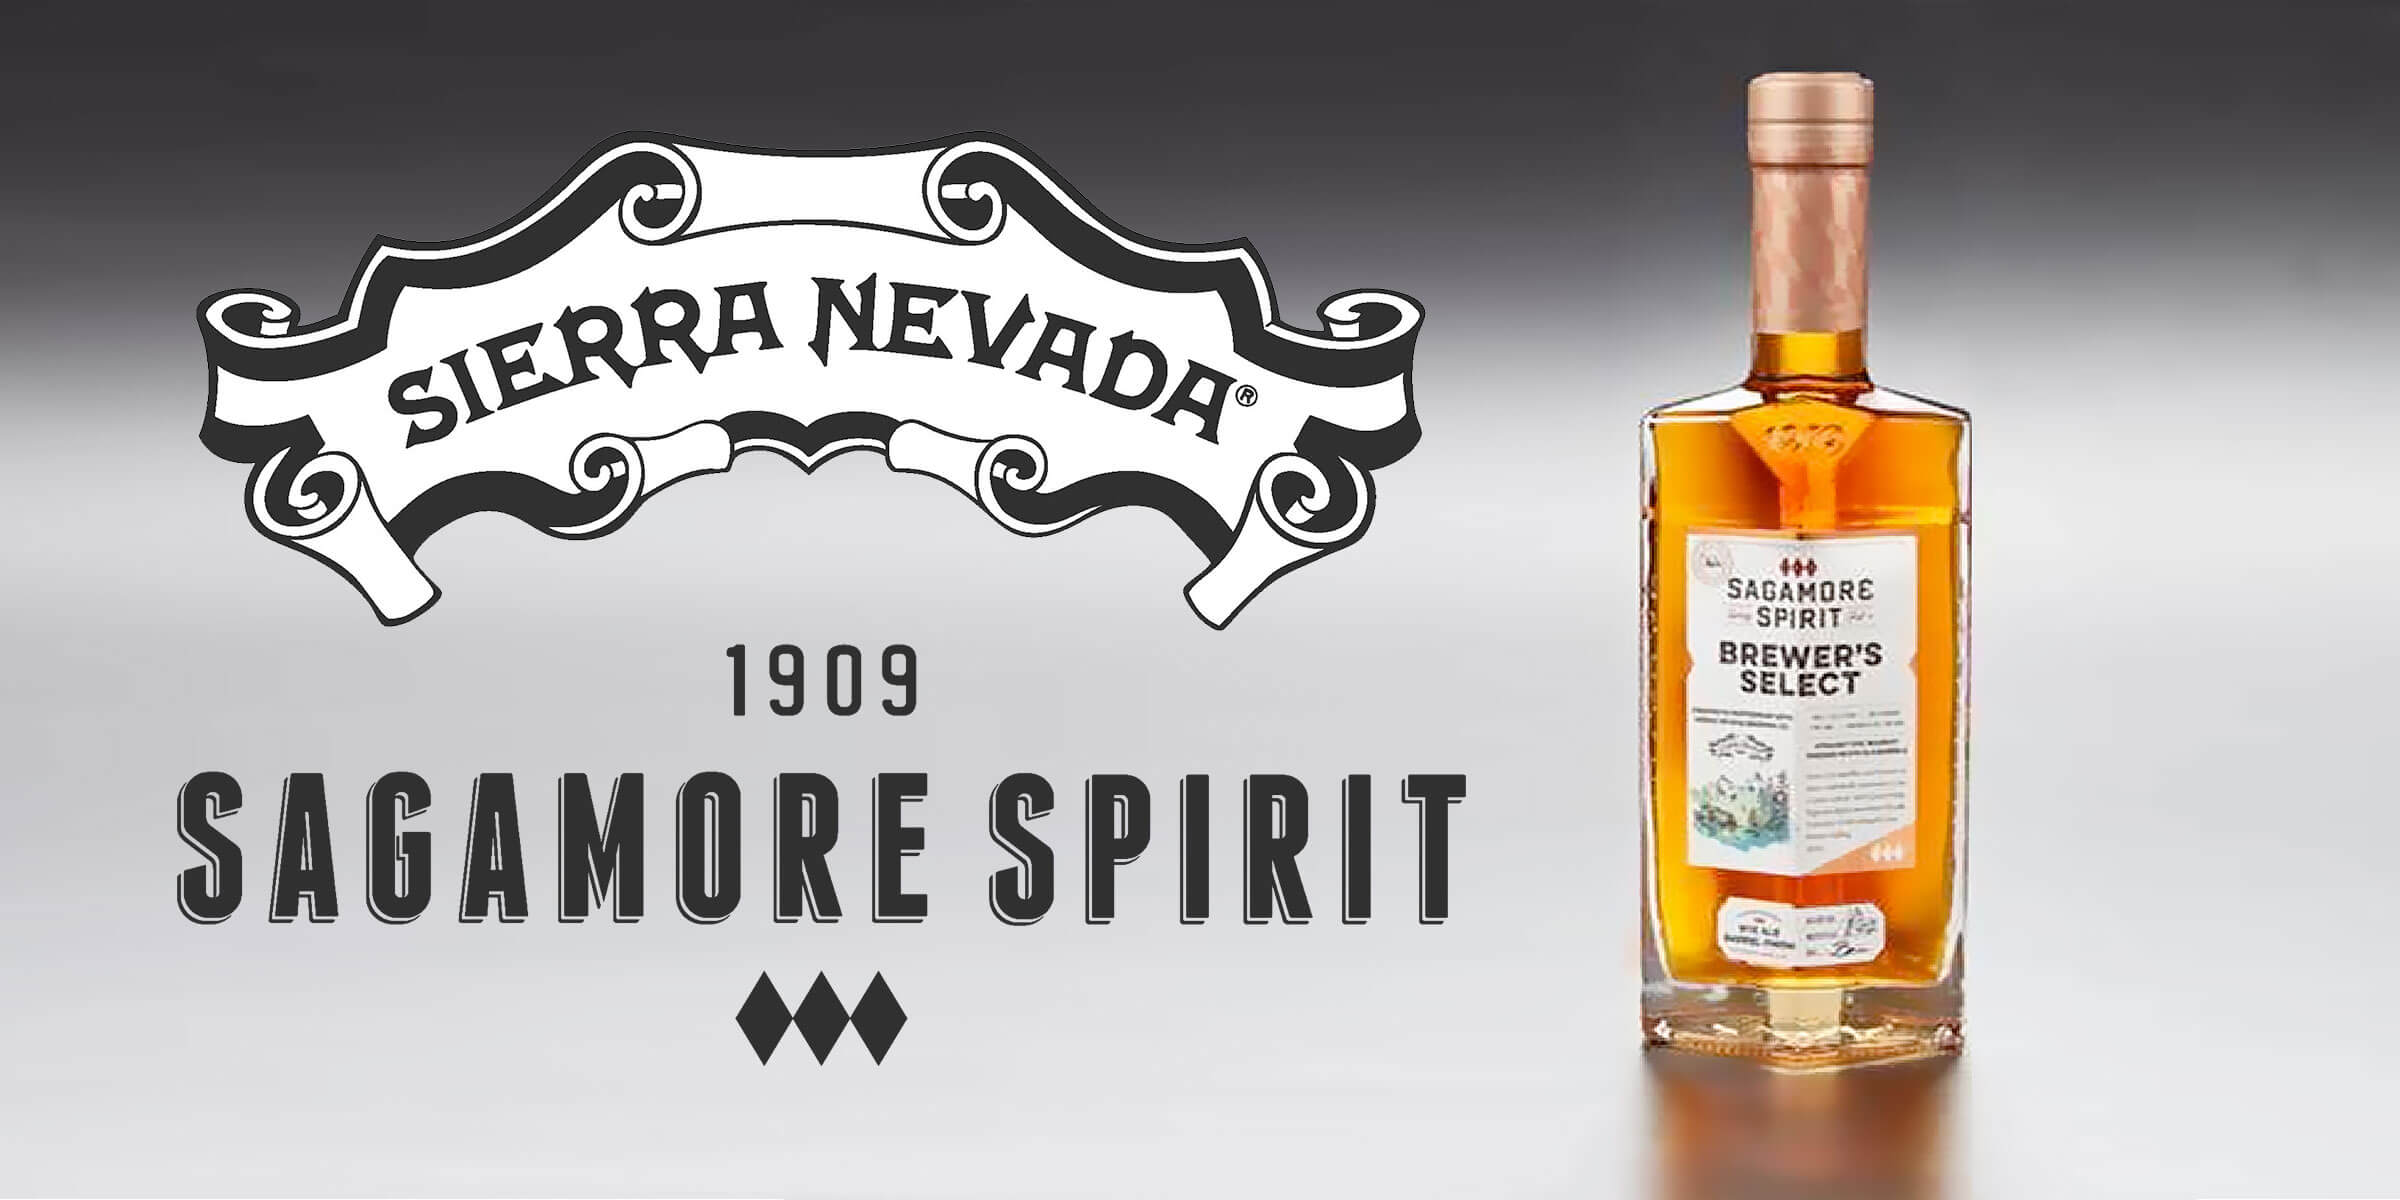 Sierra Nevada Brewing Co. and Sagamore Spirit collaborated on Sagamore Spirit Brewer's Select Rye Ale Barrel Finish, a rye whiskey aged in red ale barrels.